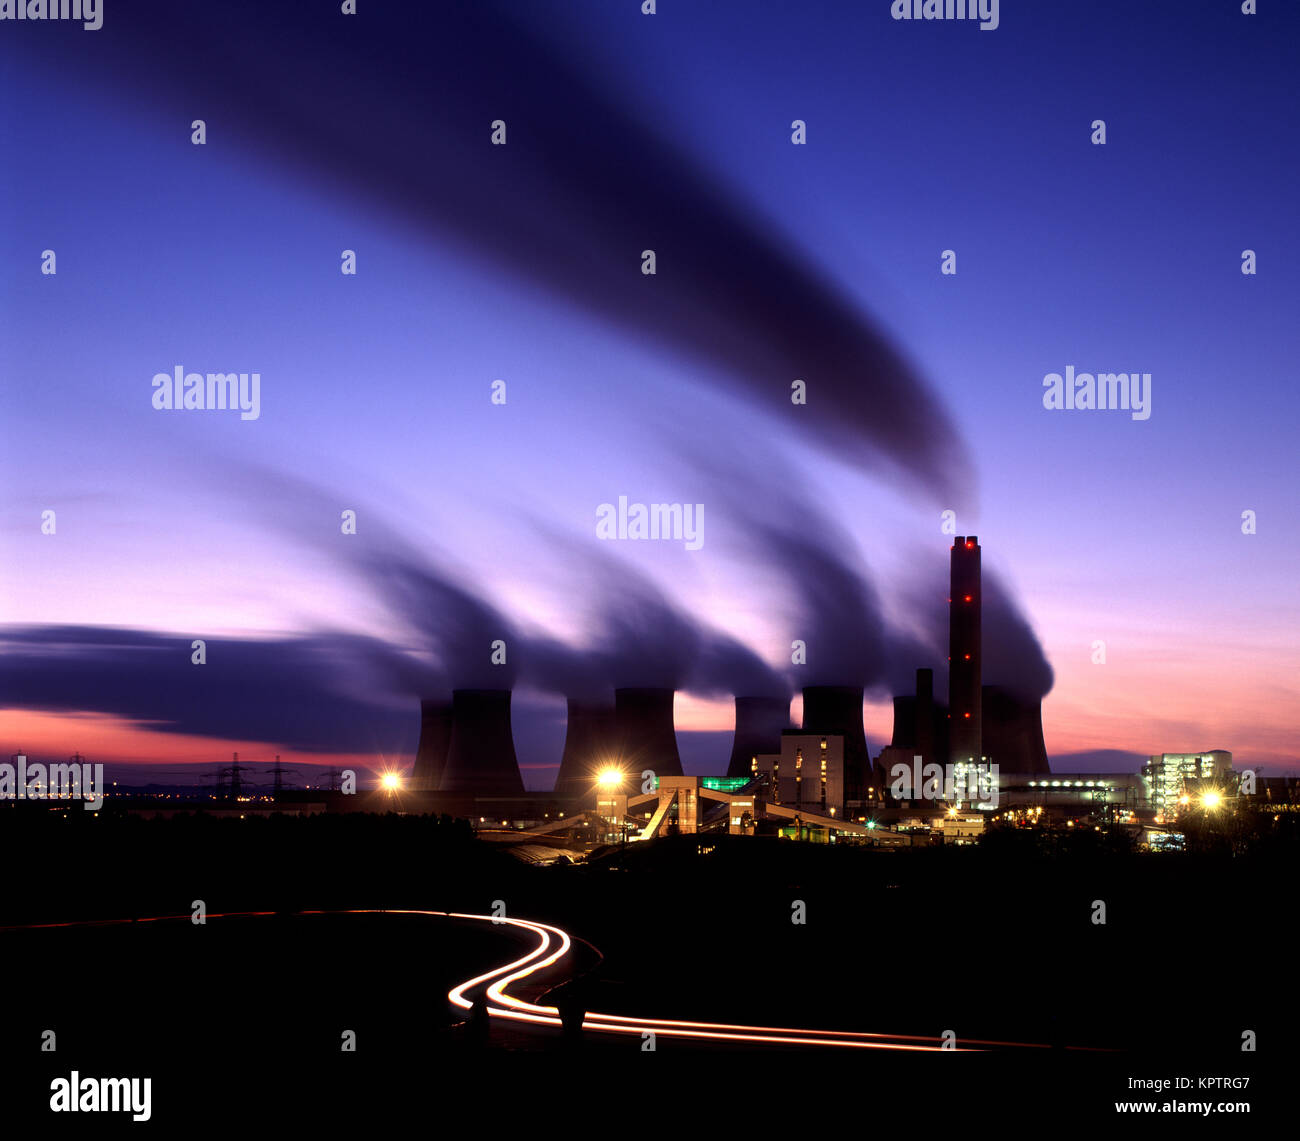 Coal fired Power Station, Ratcliffe on Soar, England, UK - Stock Image